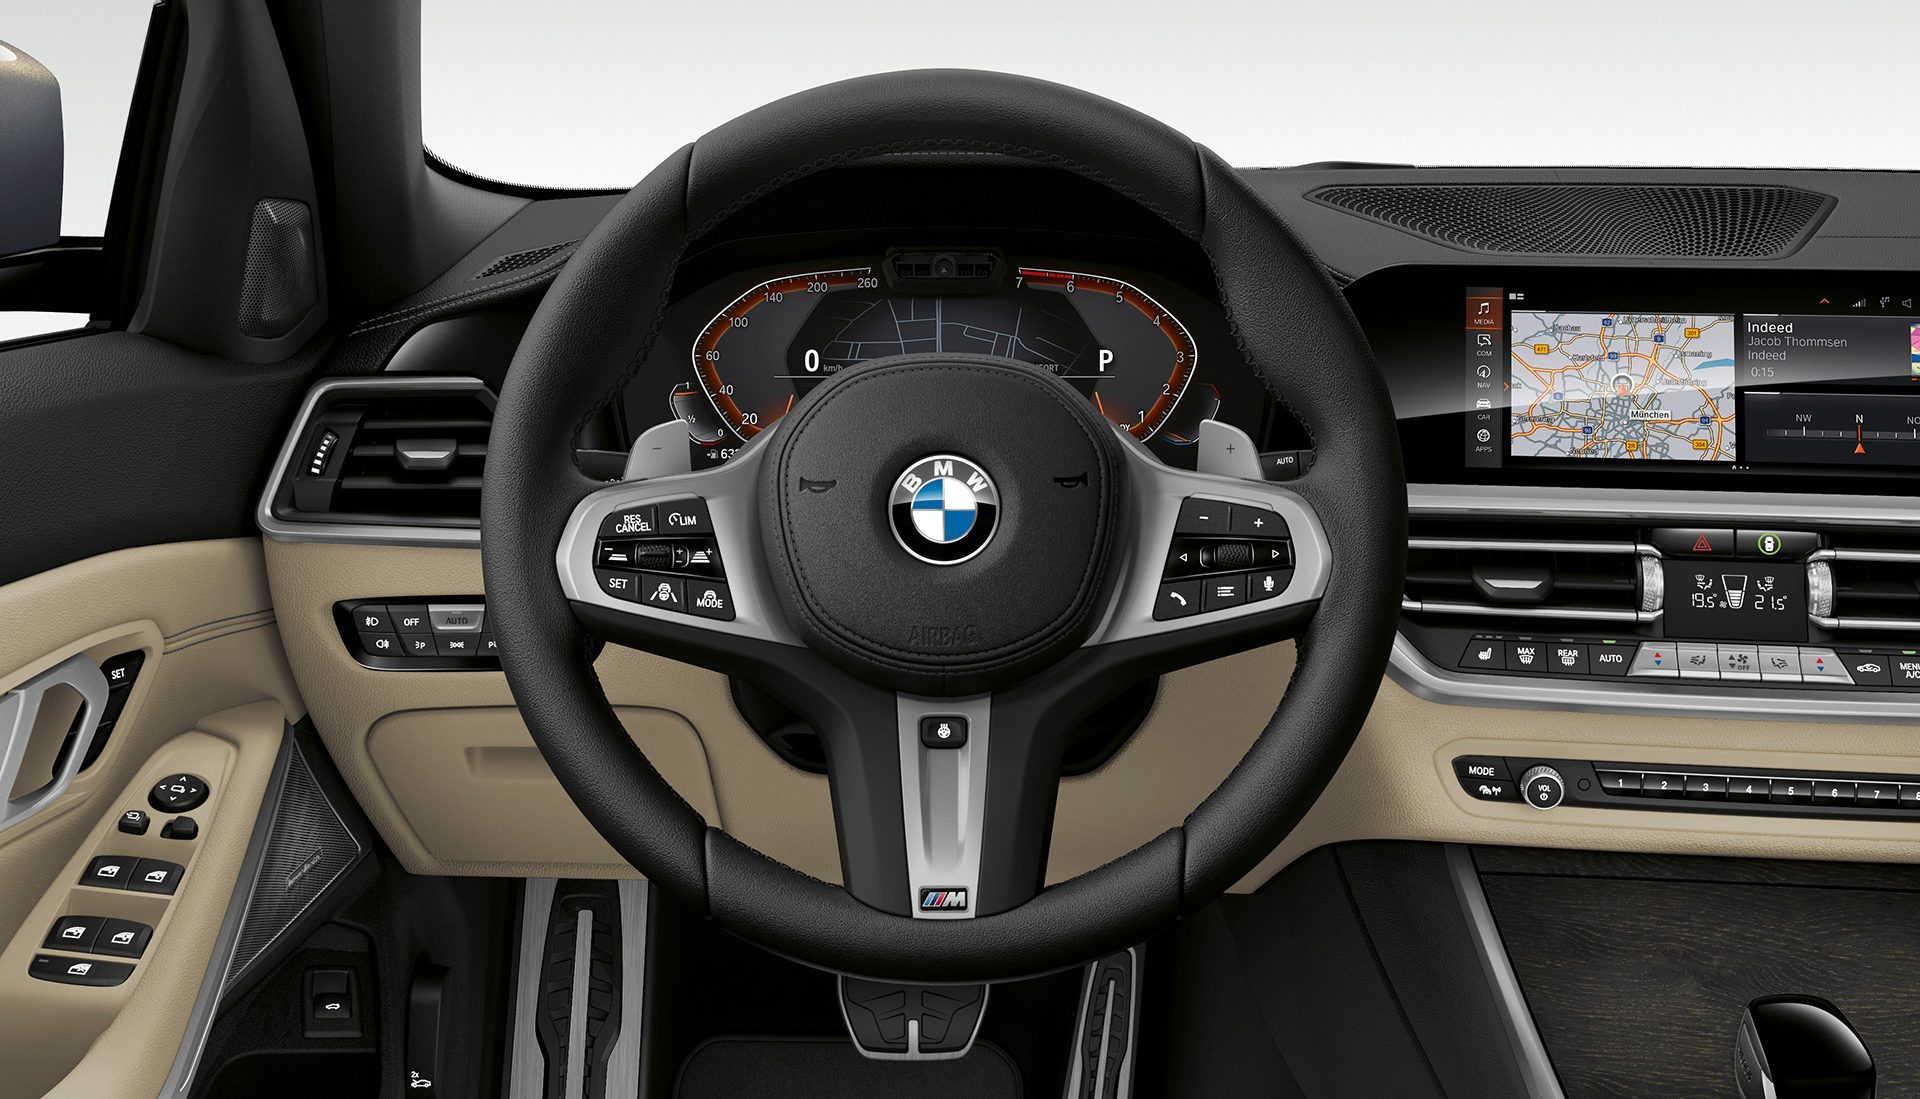 bmw-3series-3er-touring-inform-driving-dynamics-gallery-wallpaper-04.jpg.asset.1555514827480